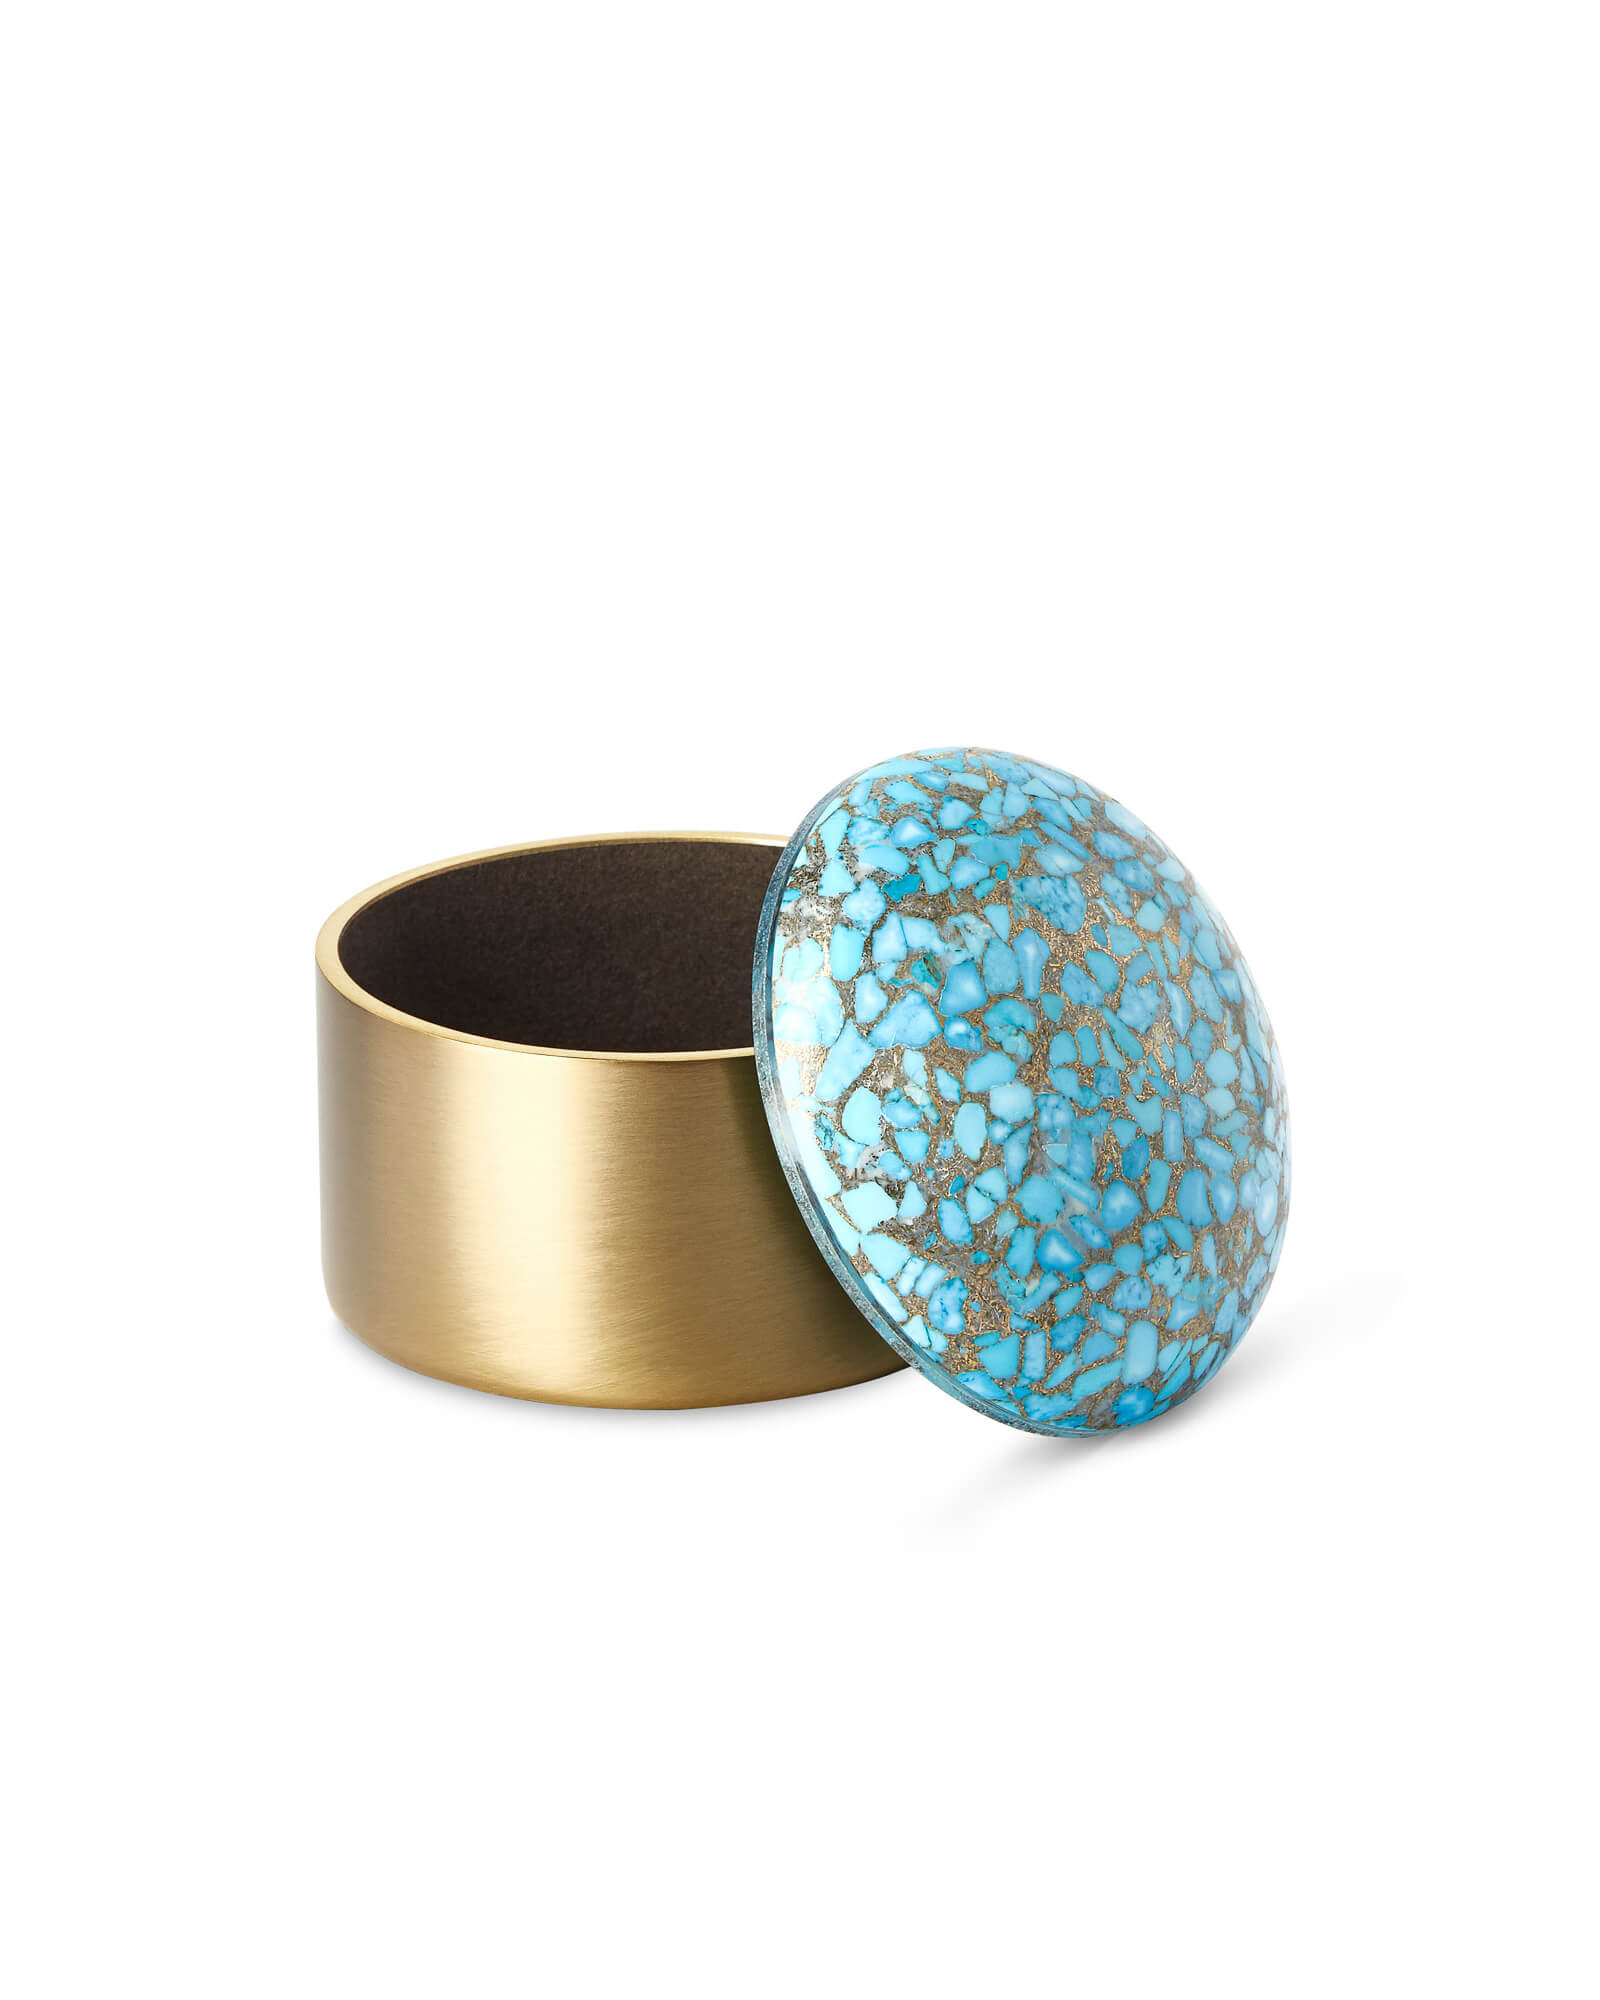 Mini Decorative Brass Dome Box in Bronze Veined Turquoise